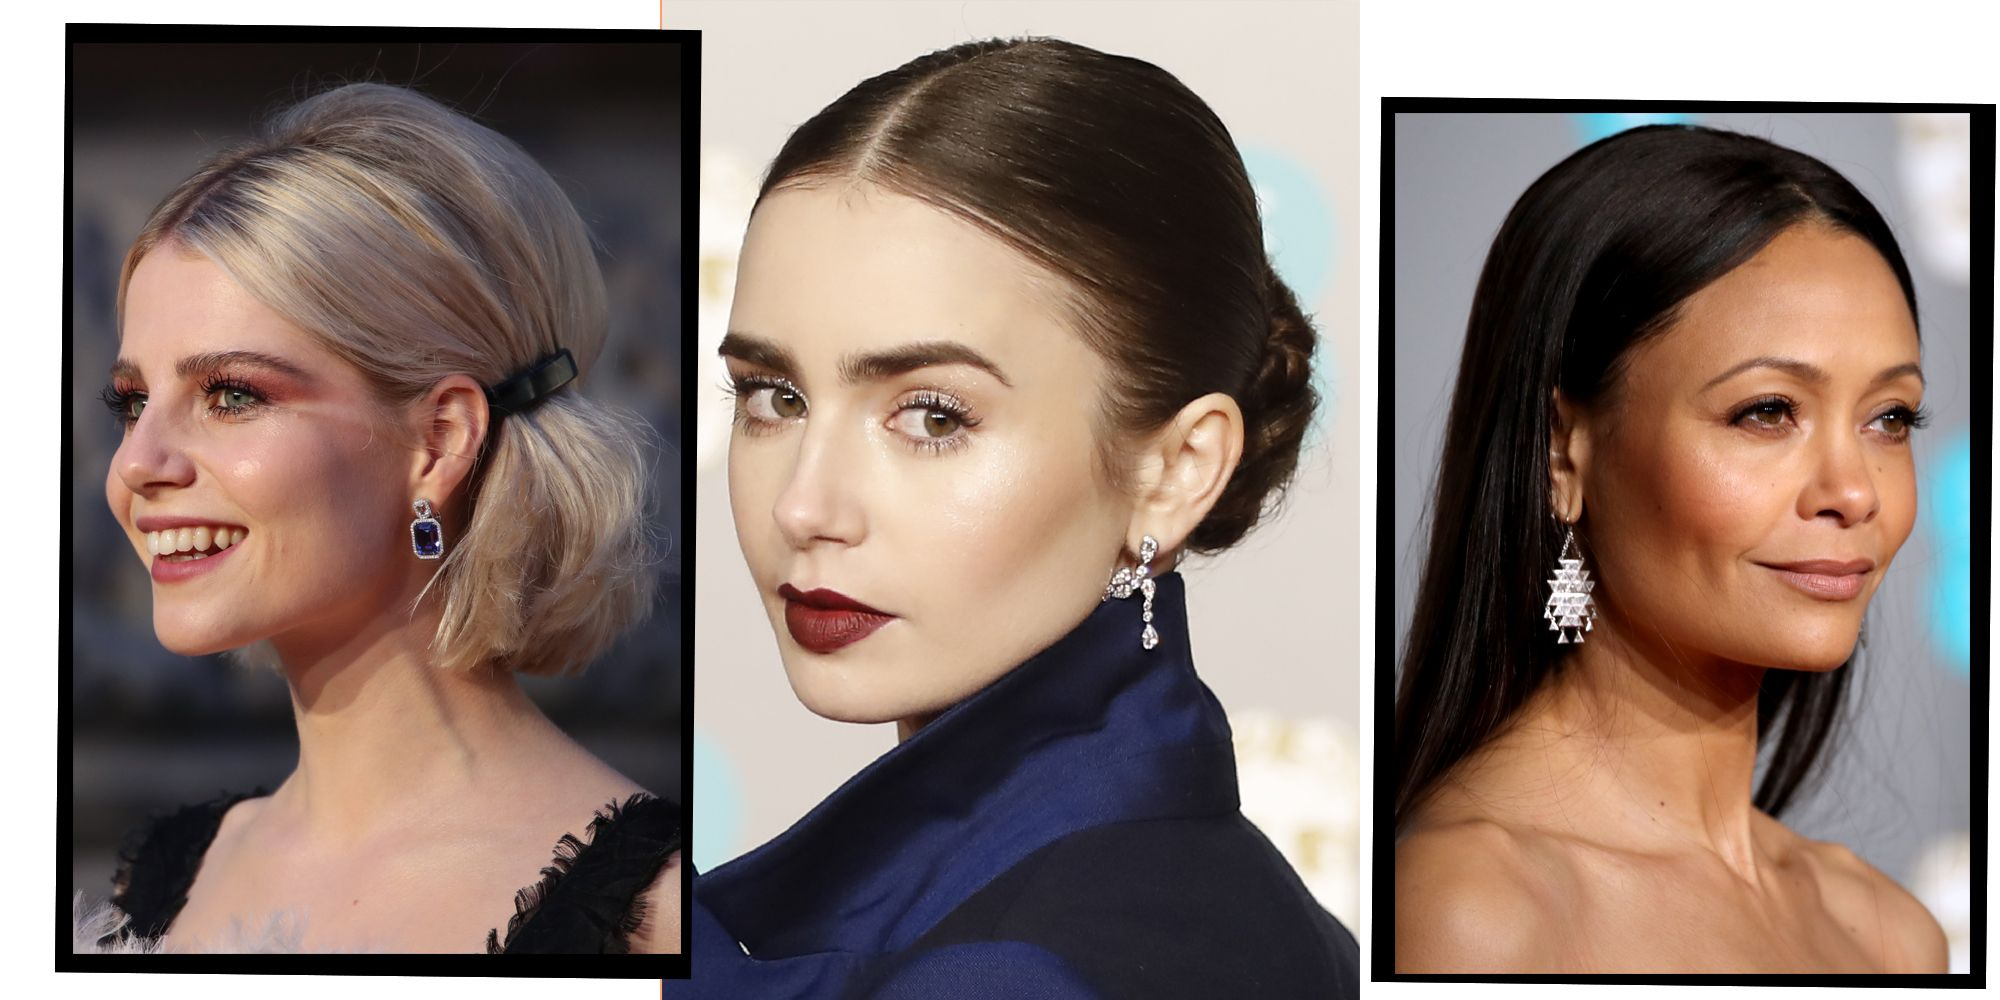 BAFTAs 2019: The Best Celebrity Hair And Make-Up Looks From The Red Carpet